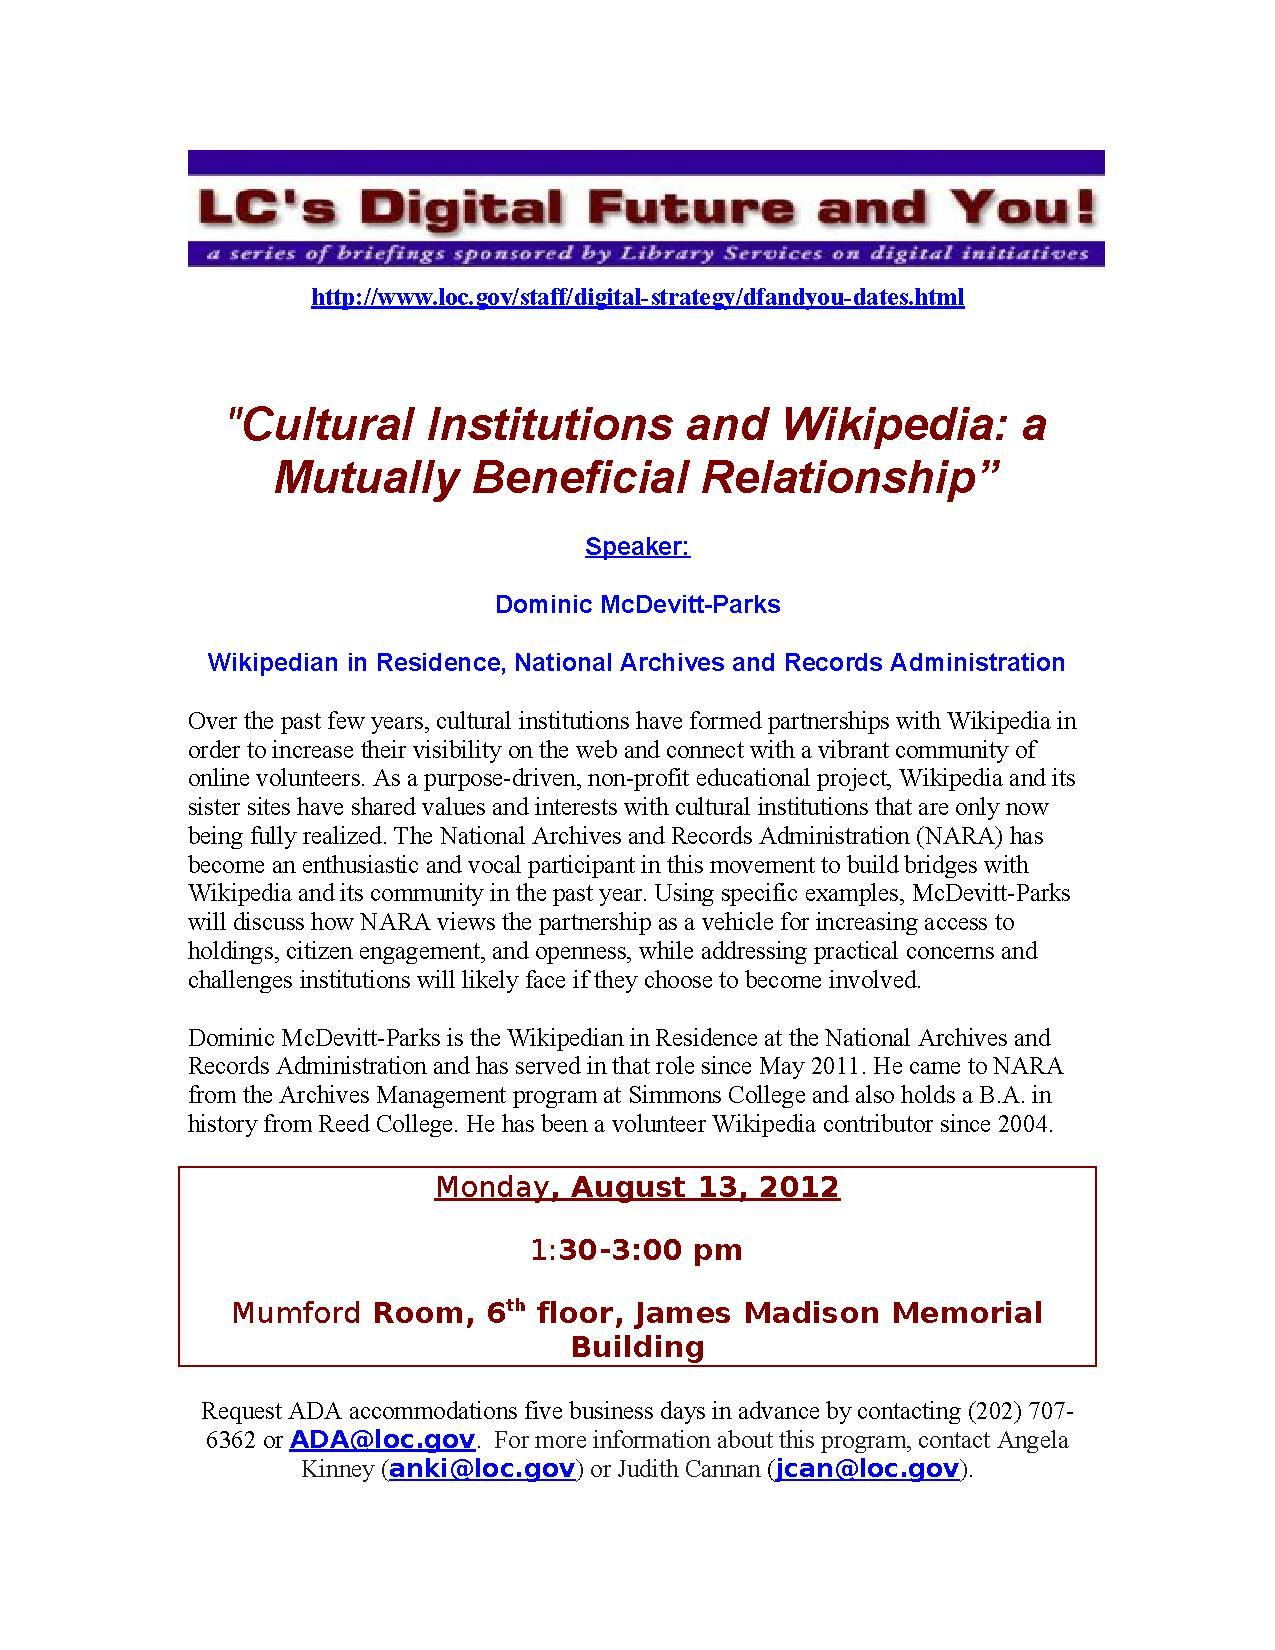 File:Cultural Institutions and Wikipedia pdf - Wikimedia Commons